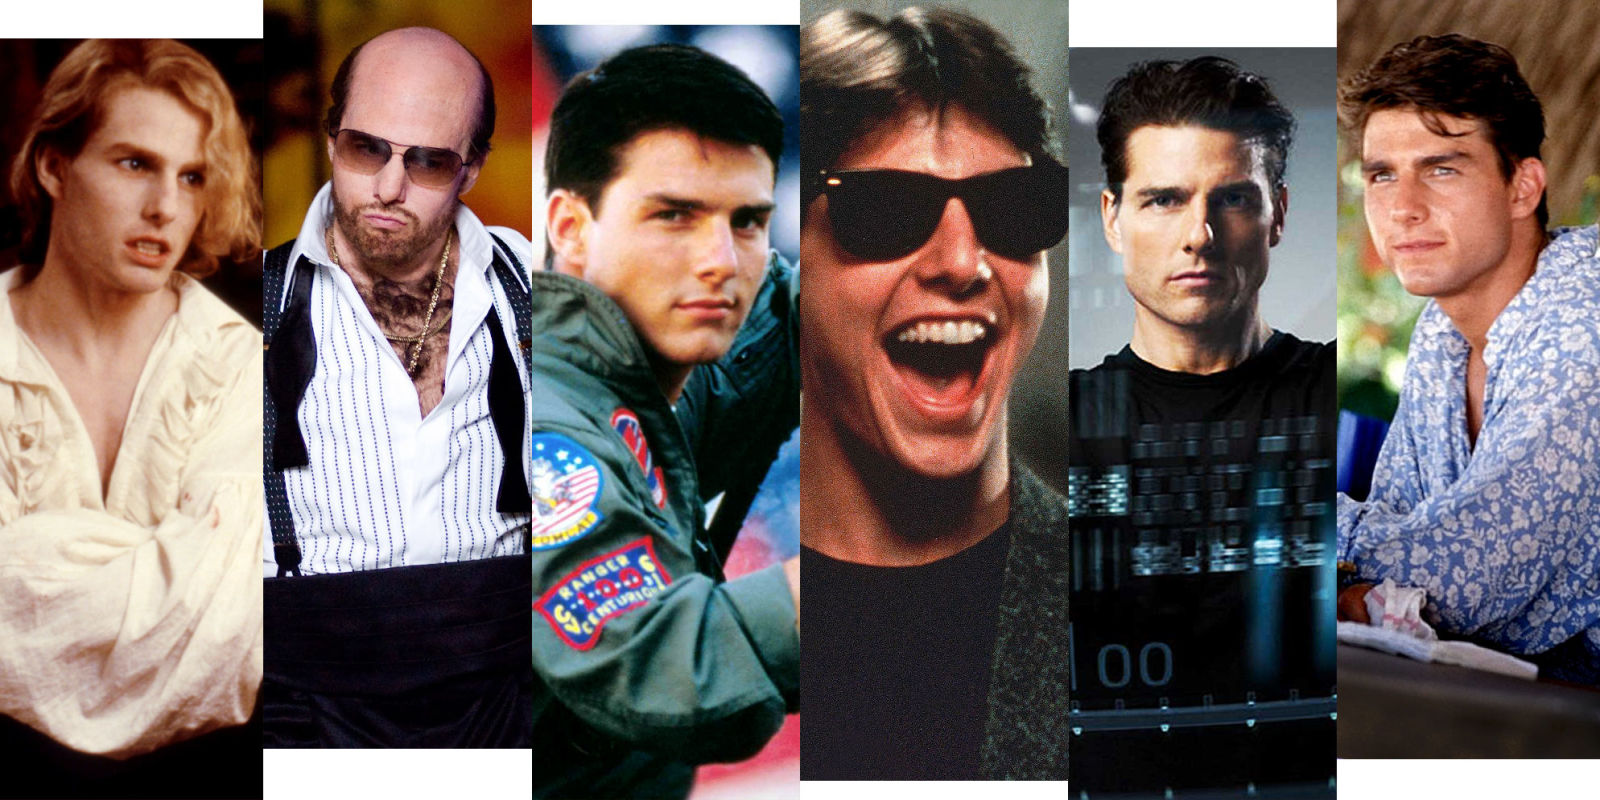 Tom Cruise's Best Film Roles